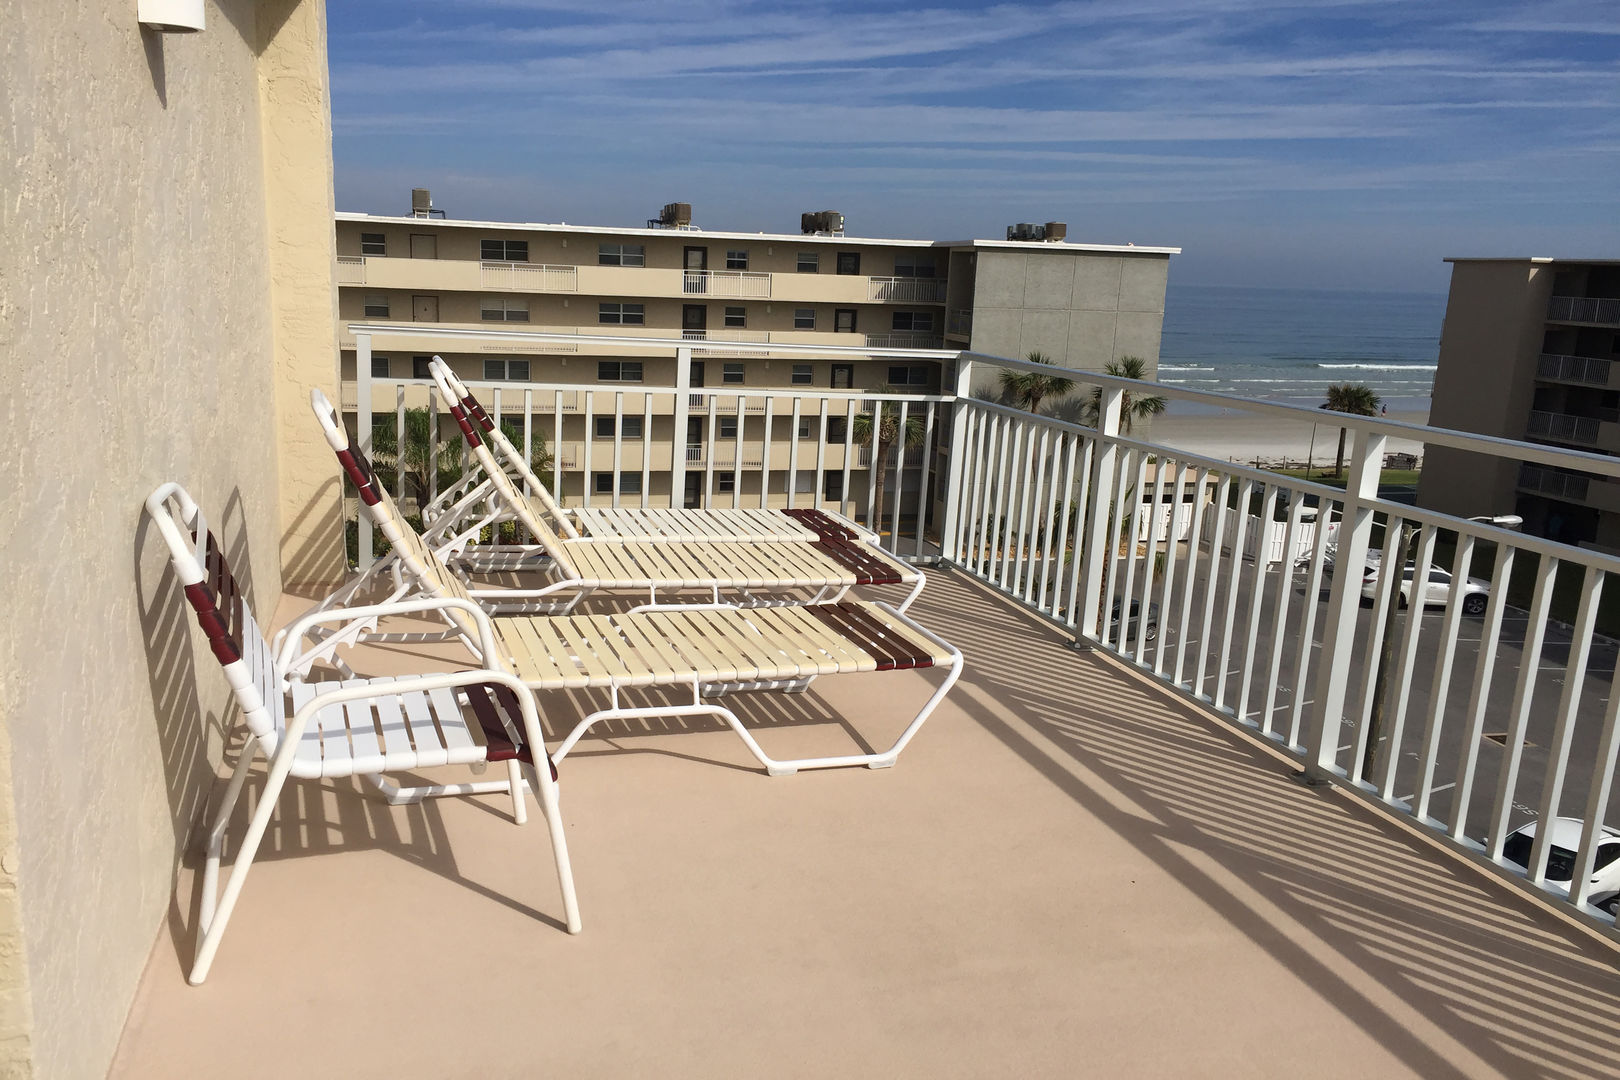 Vacation Rental in New Smyrna Beach with Ocean Views